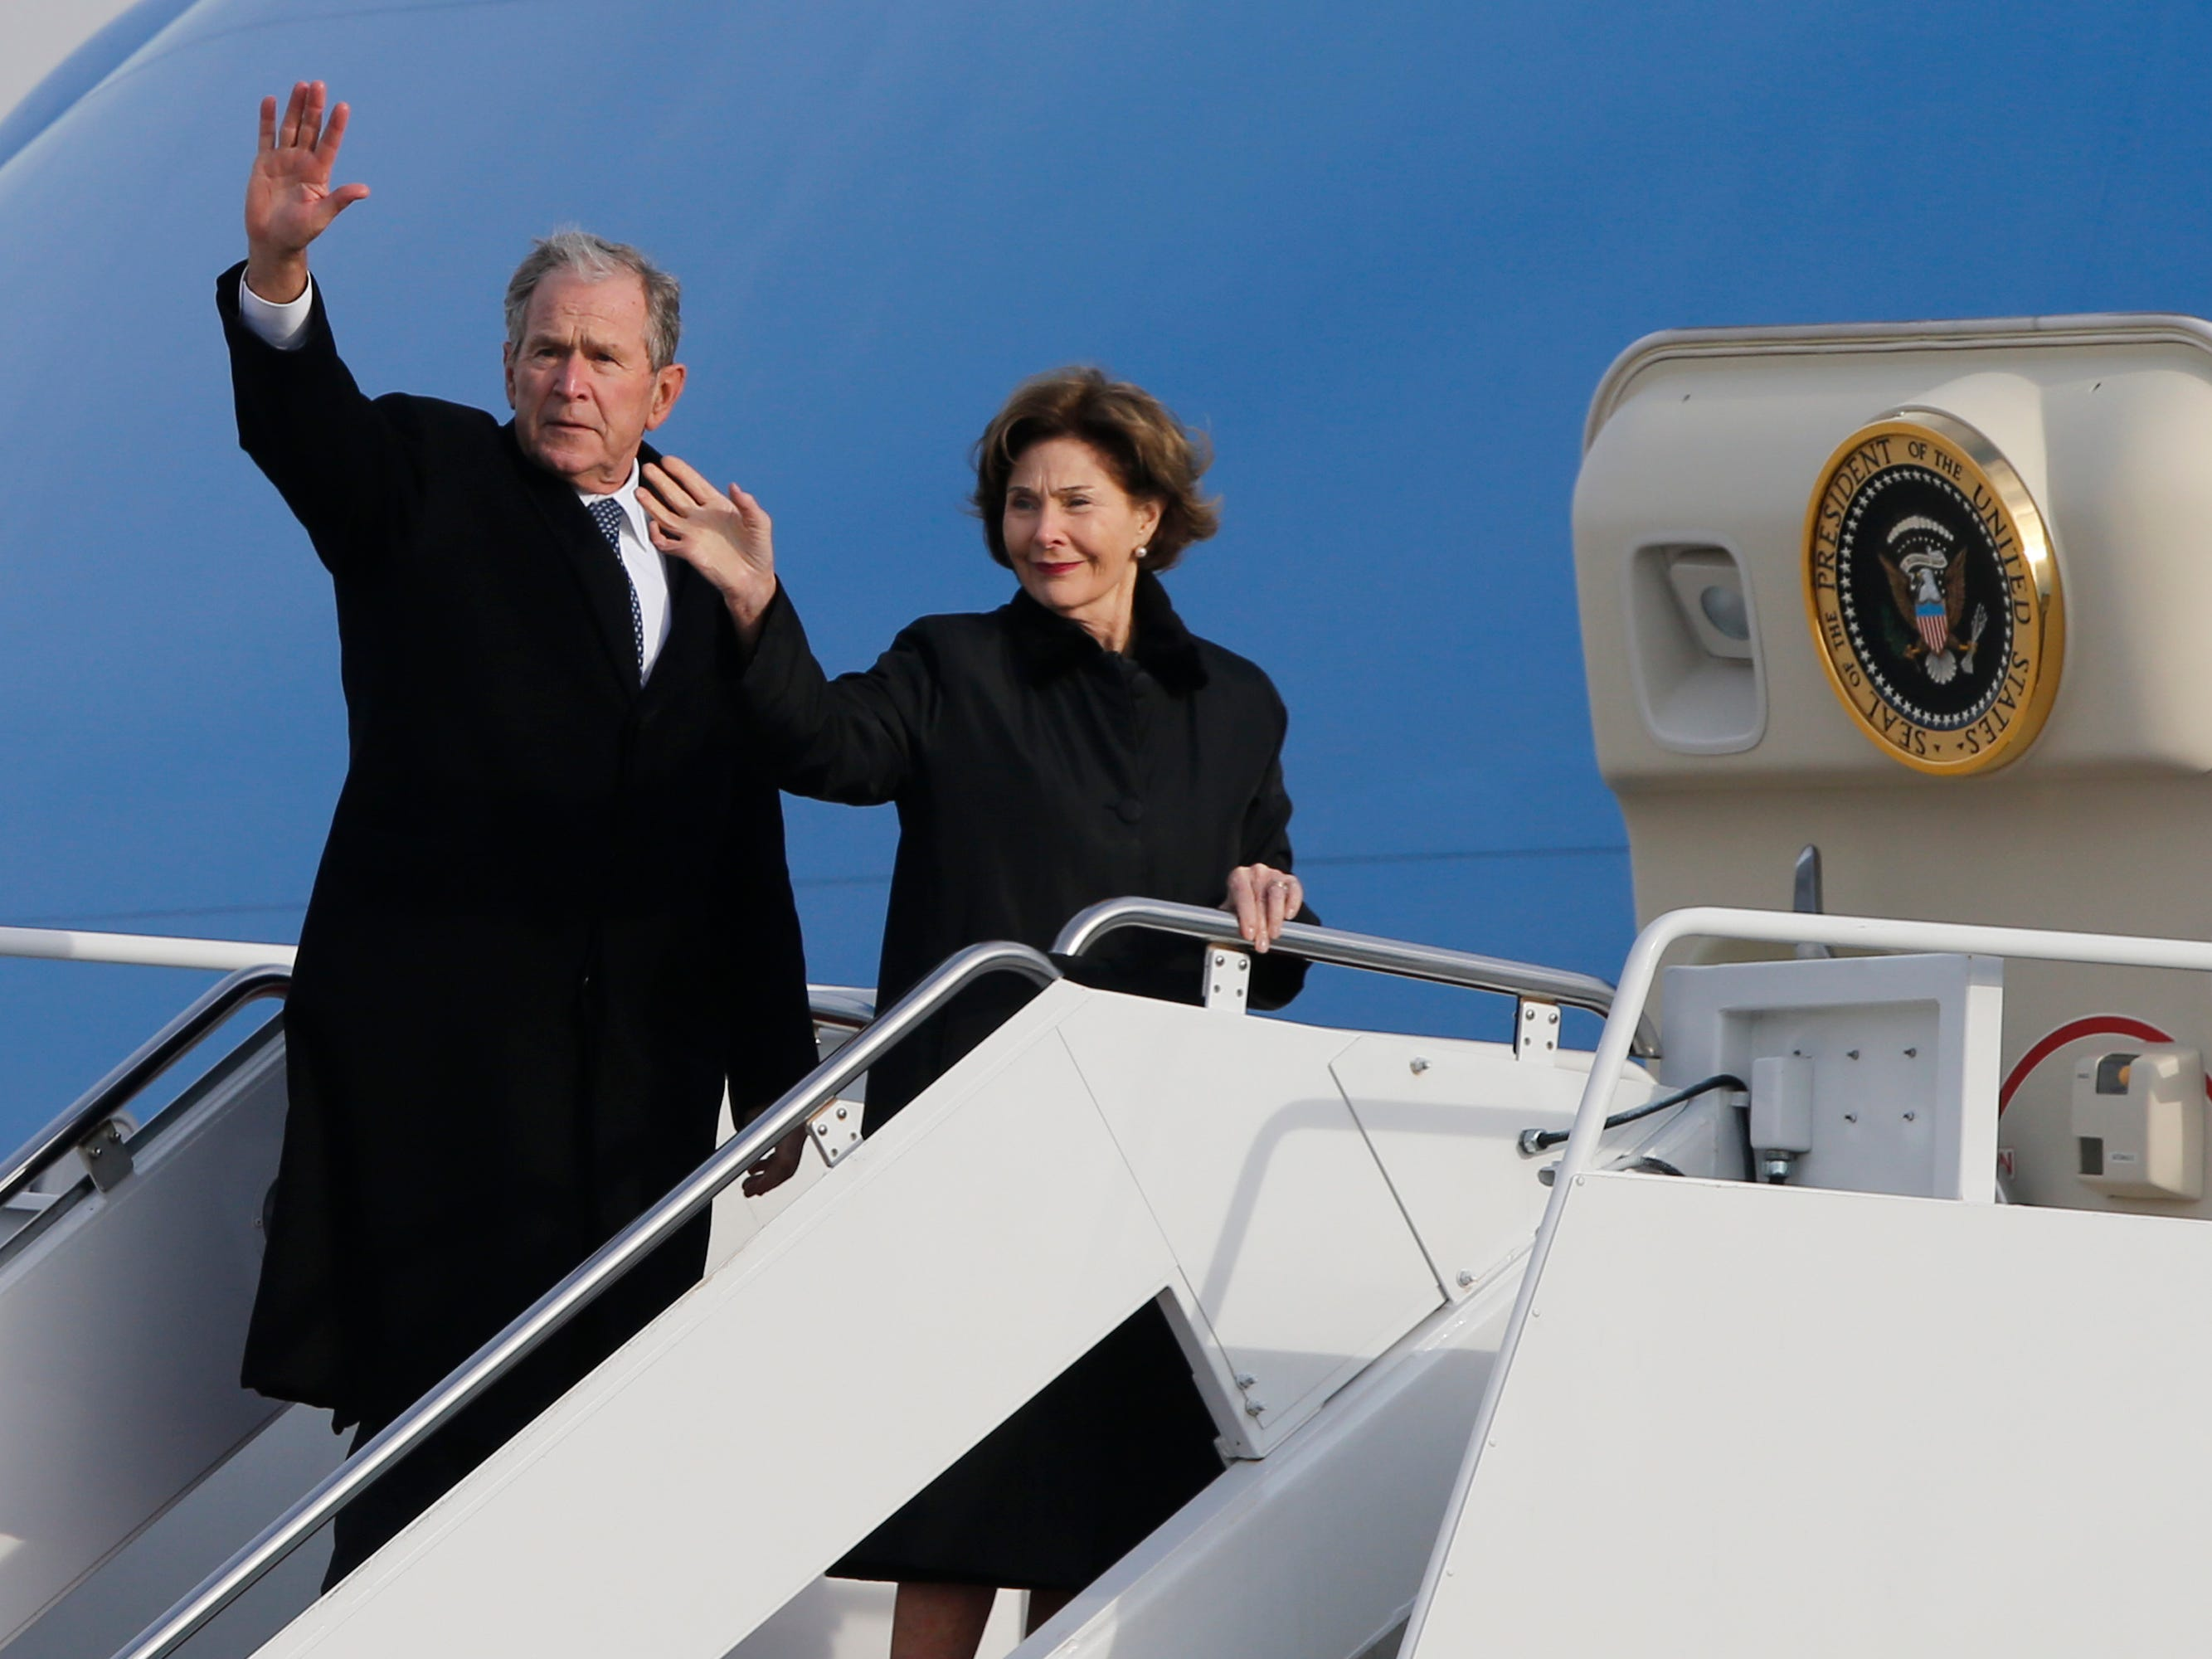 Former President George W. Bush waves to the crowd along with his wife, Laura Bush, after the flag-draped casket of former President George H.W. Bush was carried by a joint services military honor guard to an Air Force jet during a departure ceremony at Andrews Air Force Base, Md.